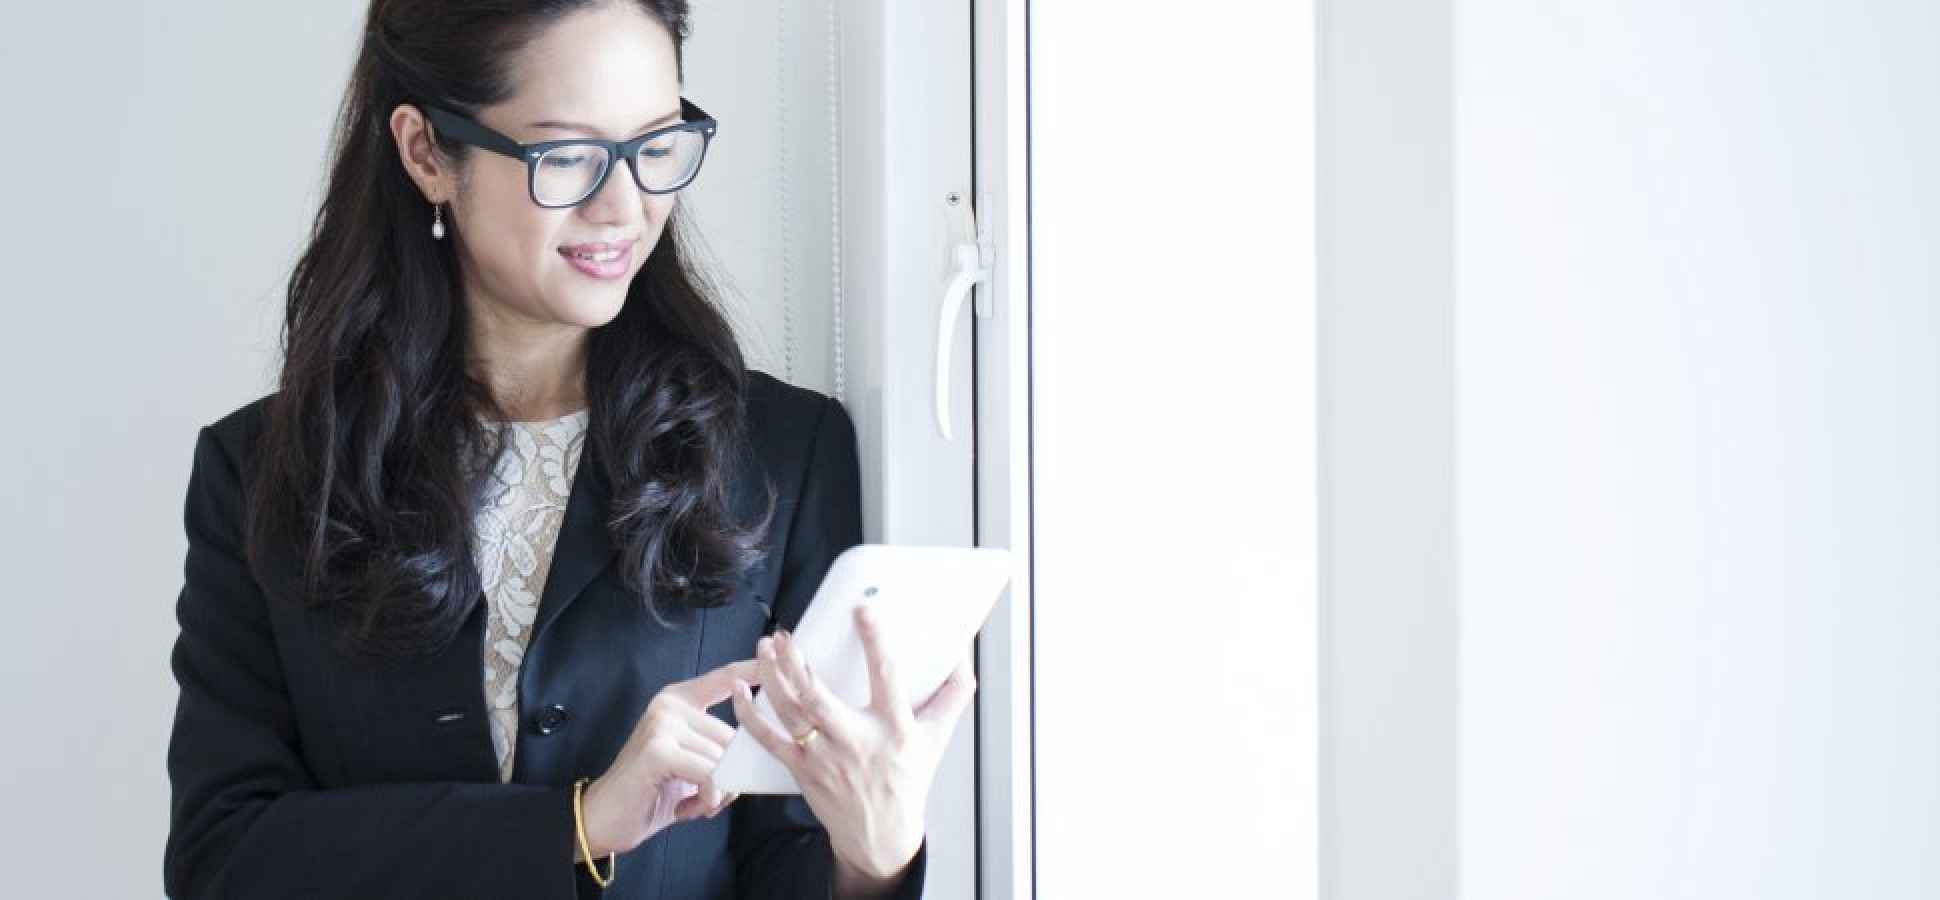 10 Apps Every Entrepreneur Needs